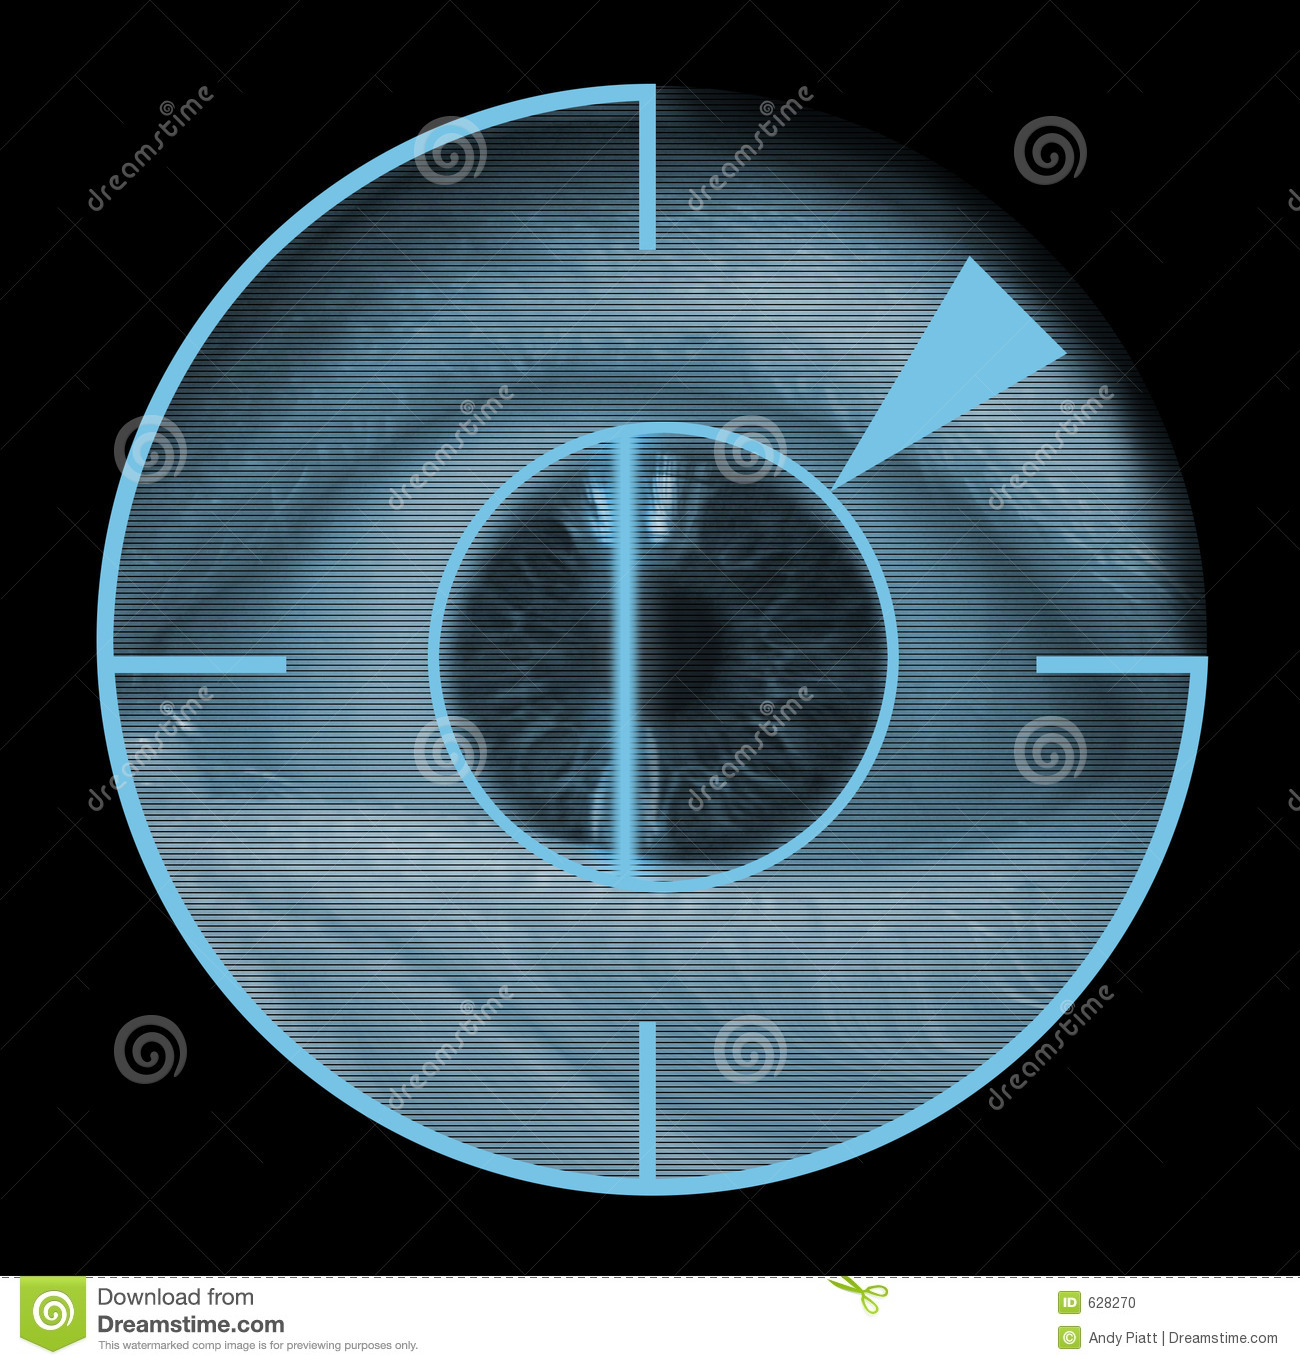 Biometric Retinal Eye Scanner Stock Photo.